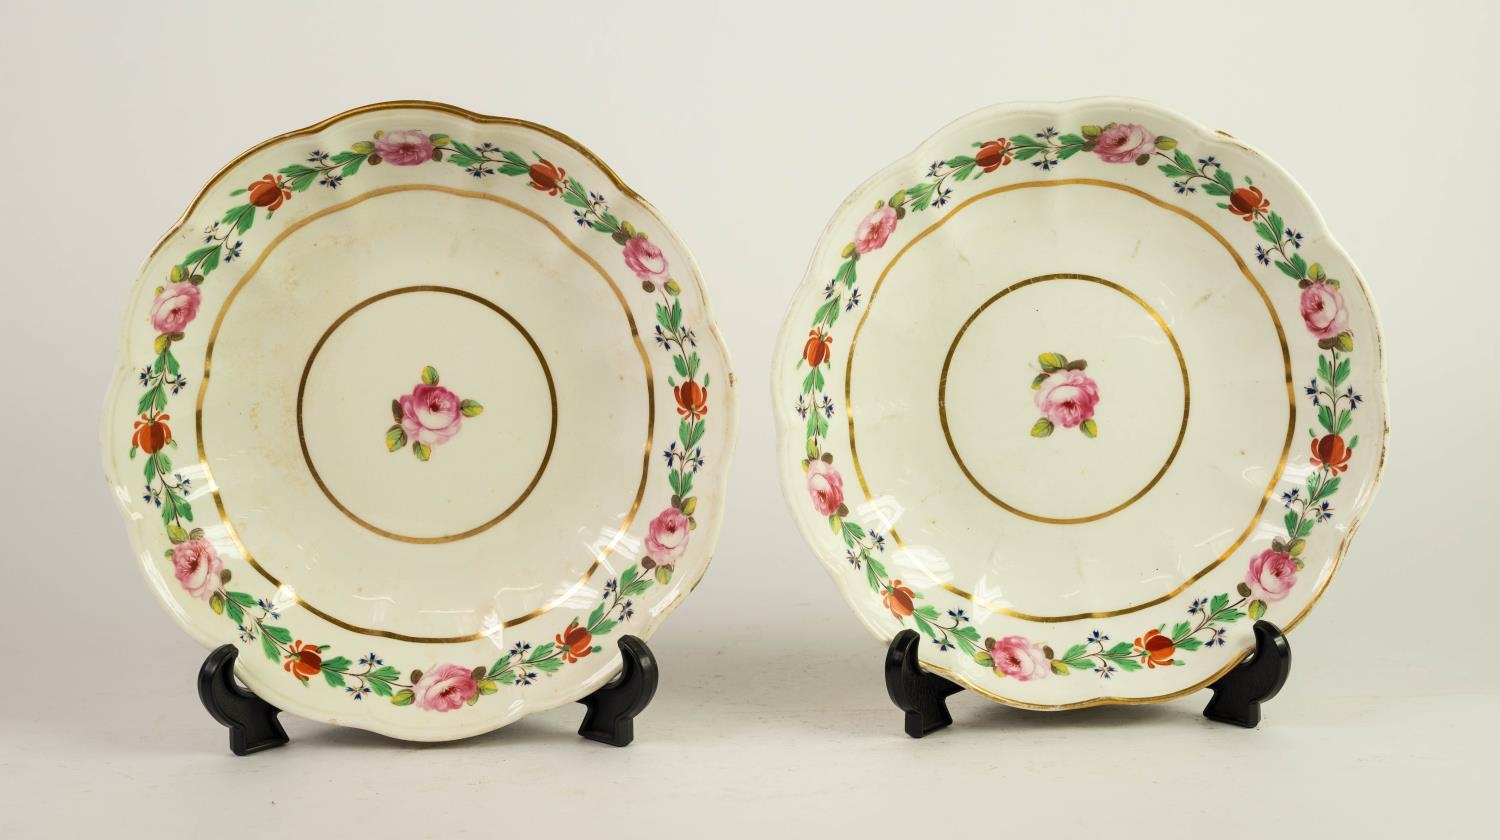 PAIR OF NINETEENTH CENTURY DERBY PORCELAIN DESSERT DISHES, each with lobated rim and floral